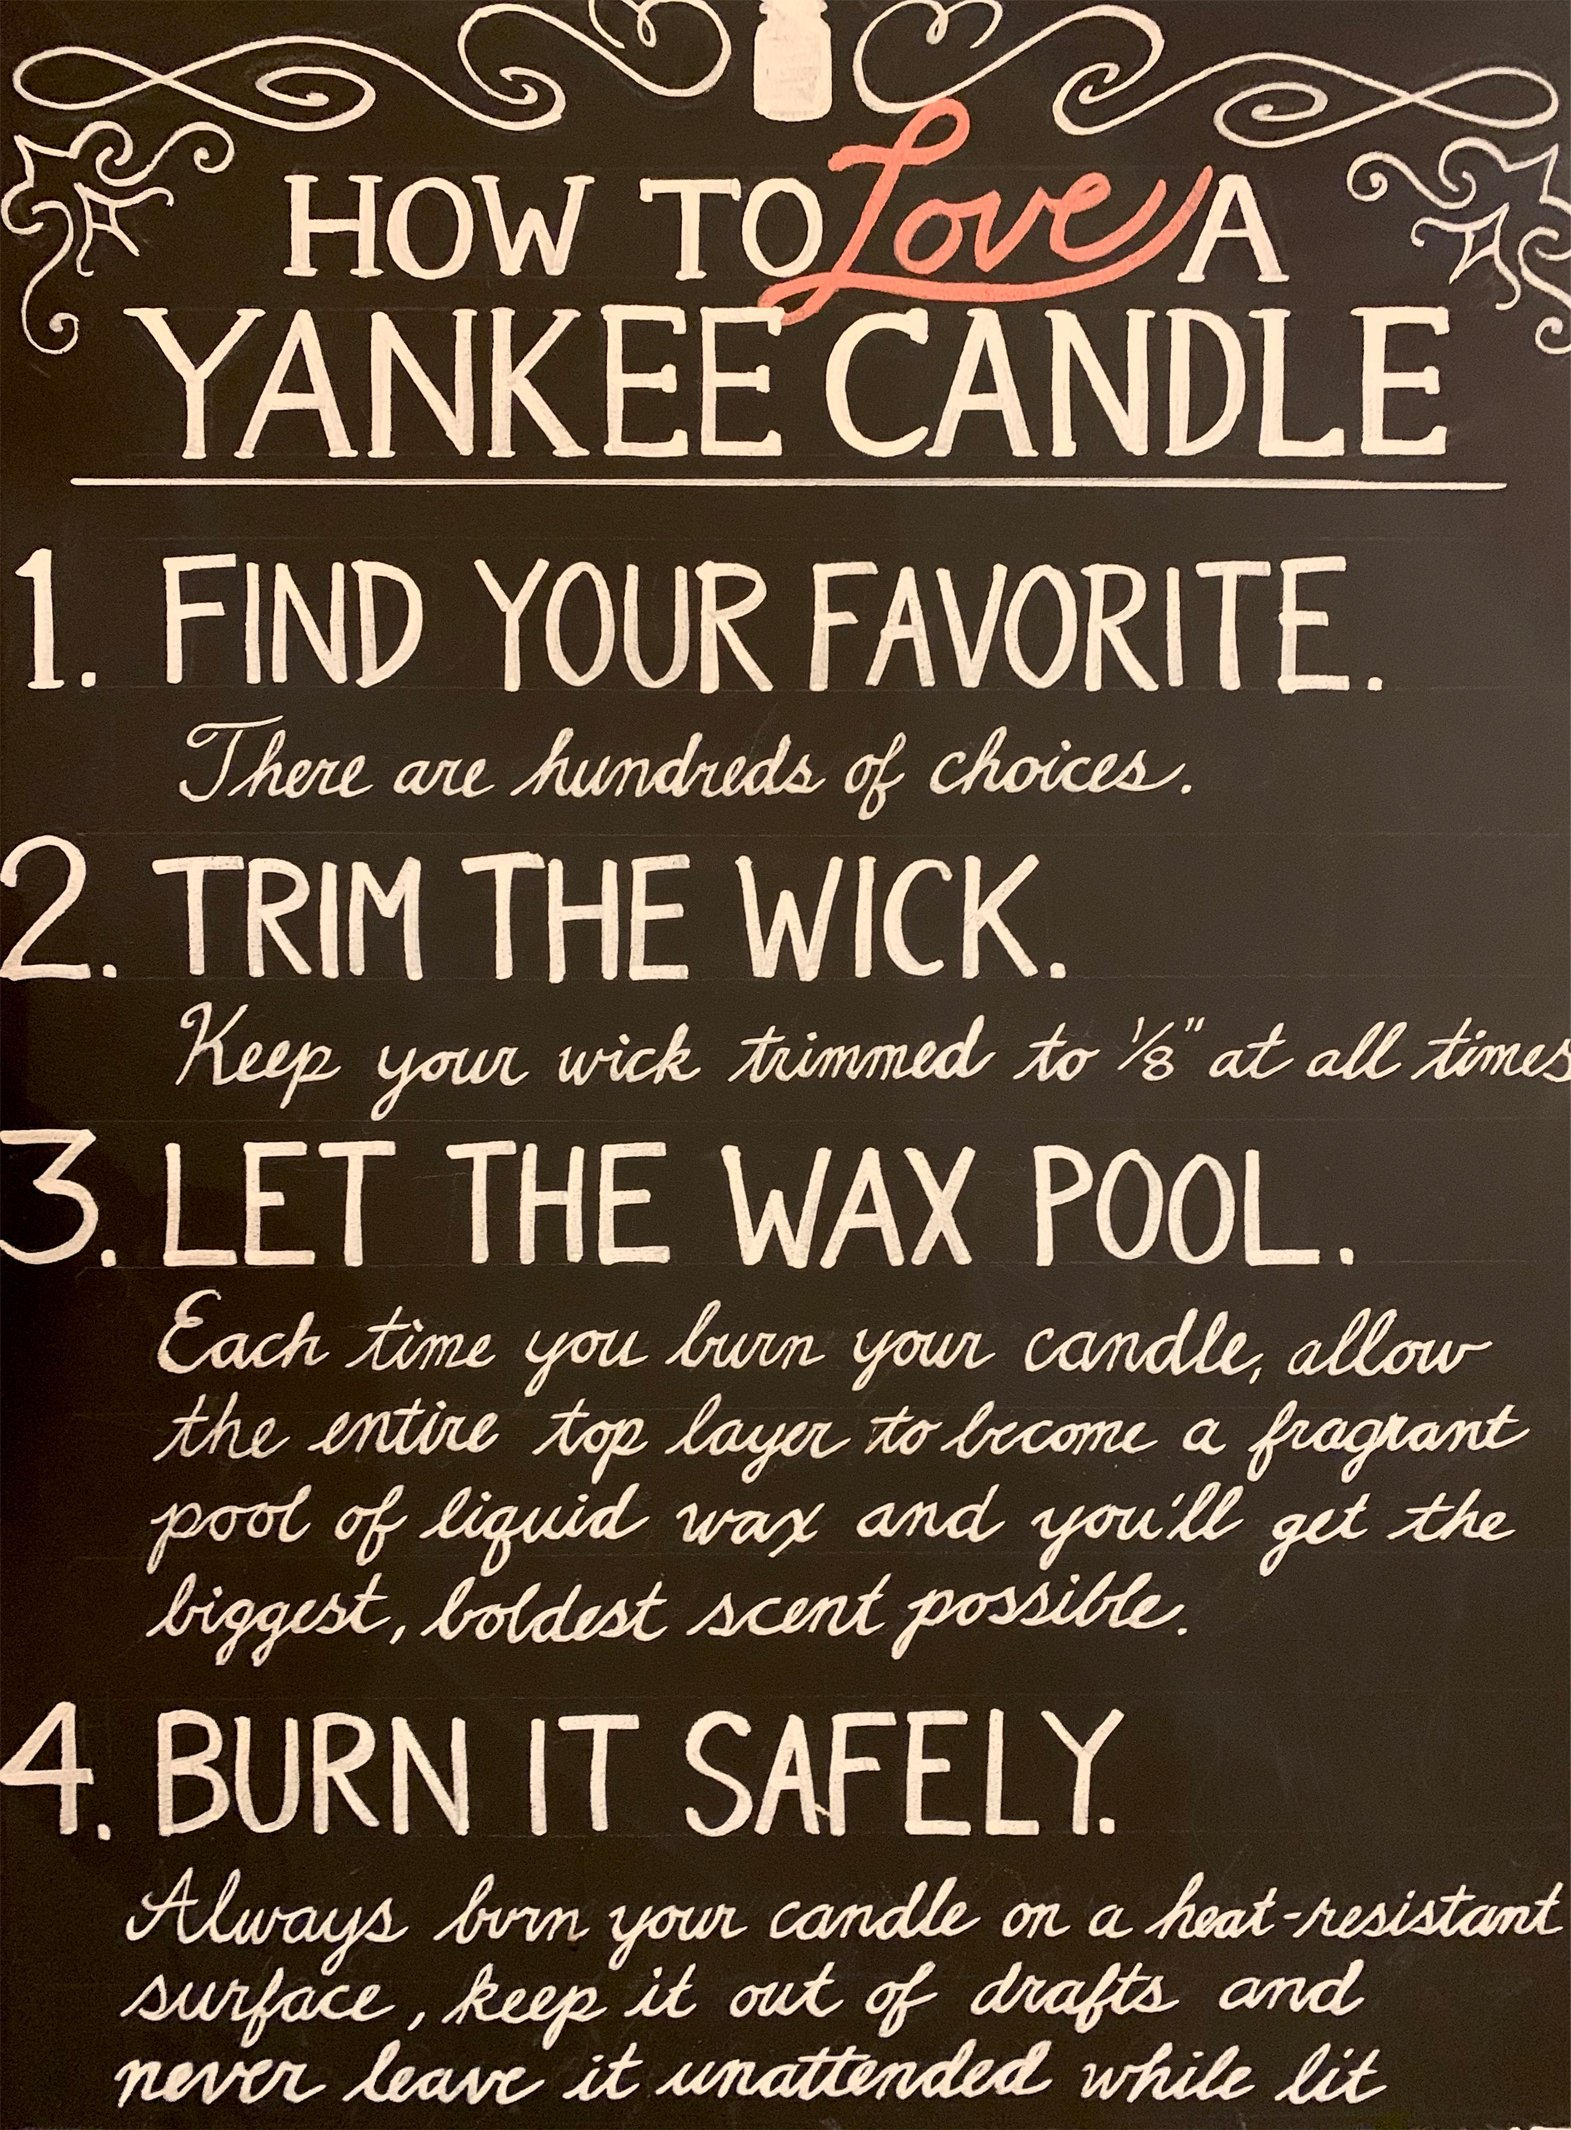 a chalkboard sign describing how to love a yankee candle on display at the yankee candle village in south deerfield, massachusetts